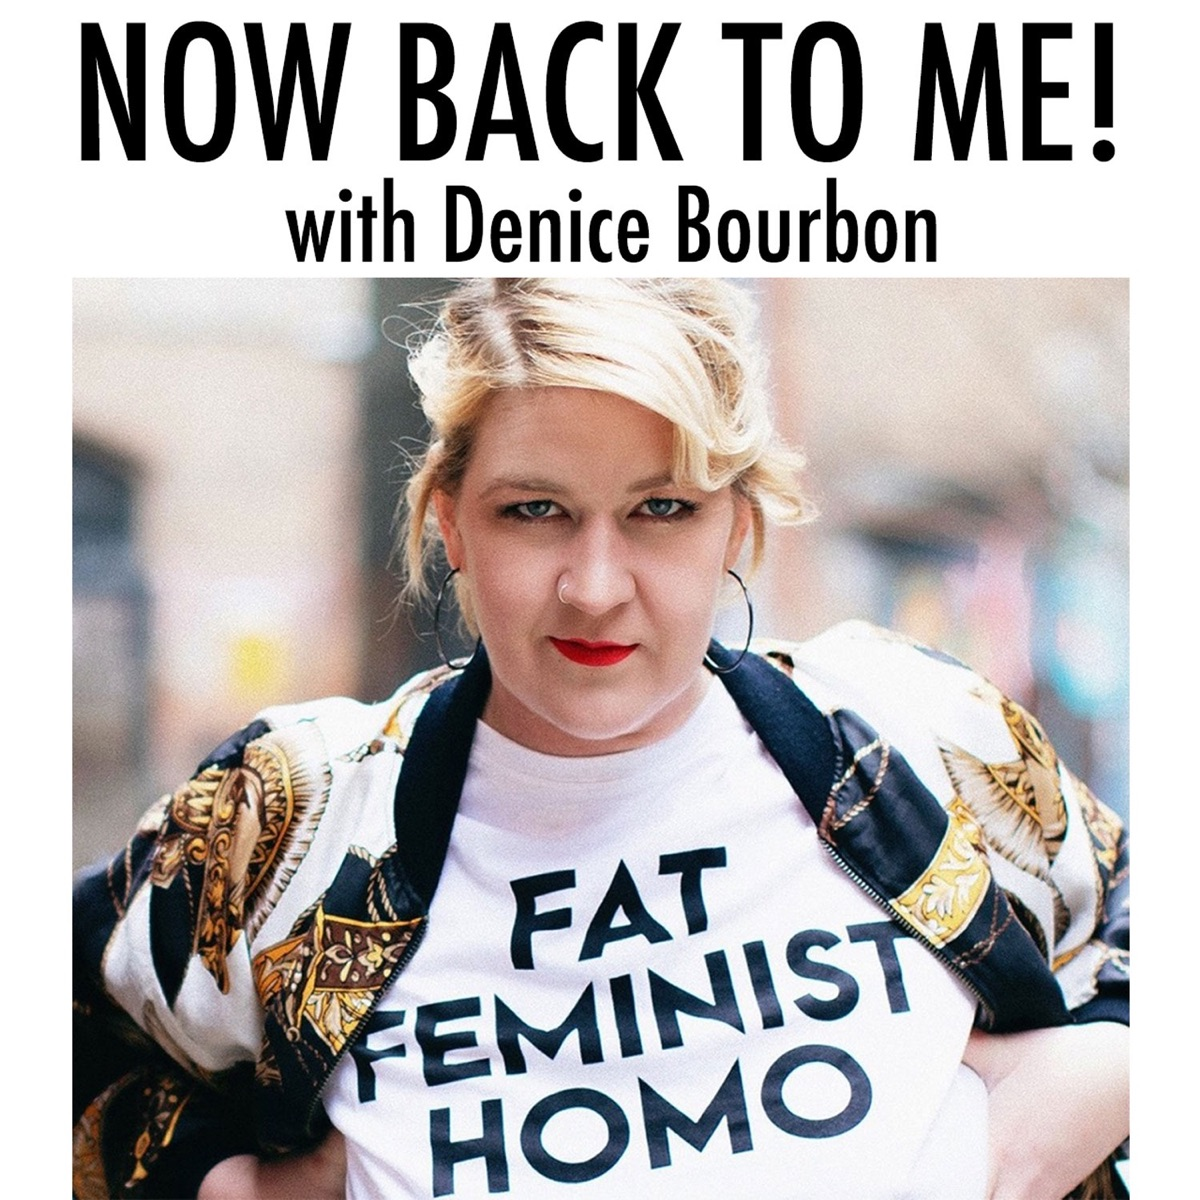 Now, Back To Me! with Denice Bourbon